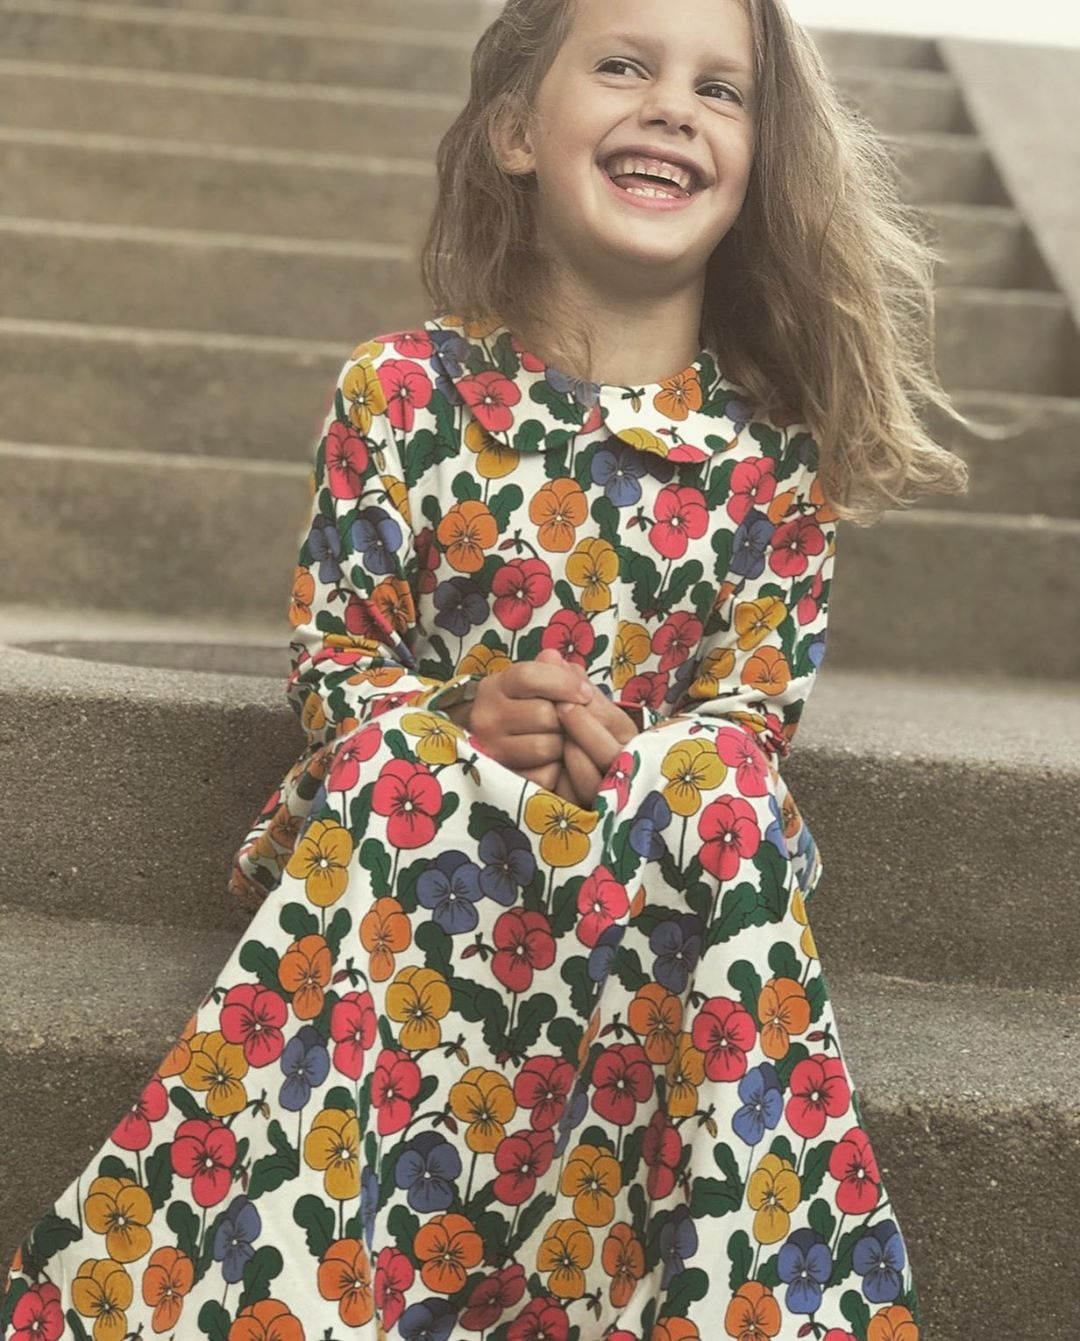 MINI Brand Kids Clothes T-shirts 2021 Autumn Girls Full Floral Pattern Dress Cotton Fashion Baby Romper Girl Boys Casual Pants 5